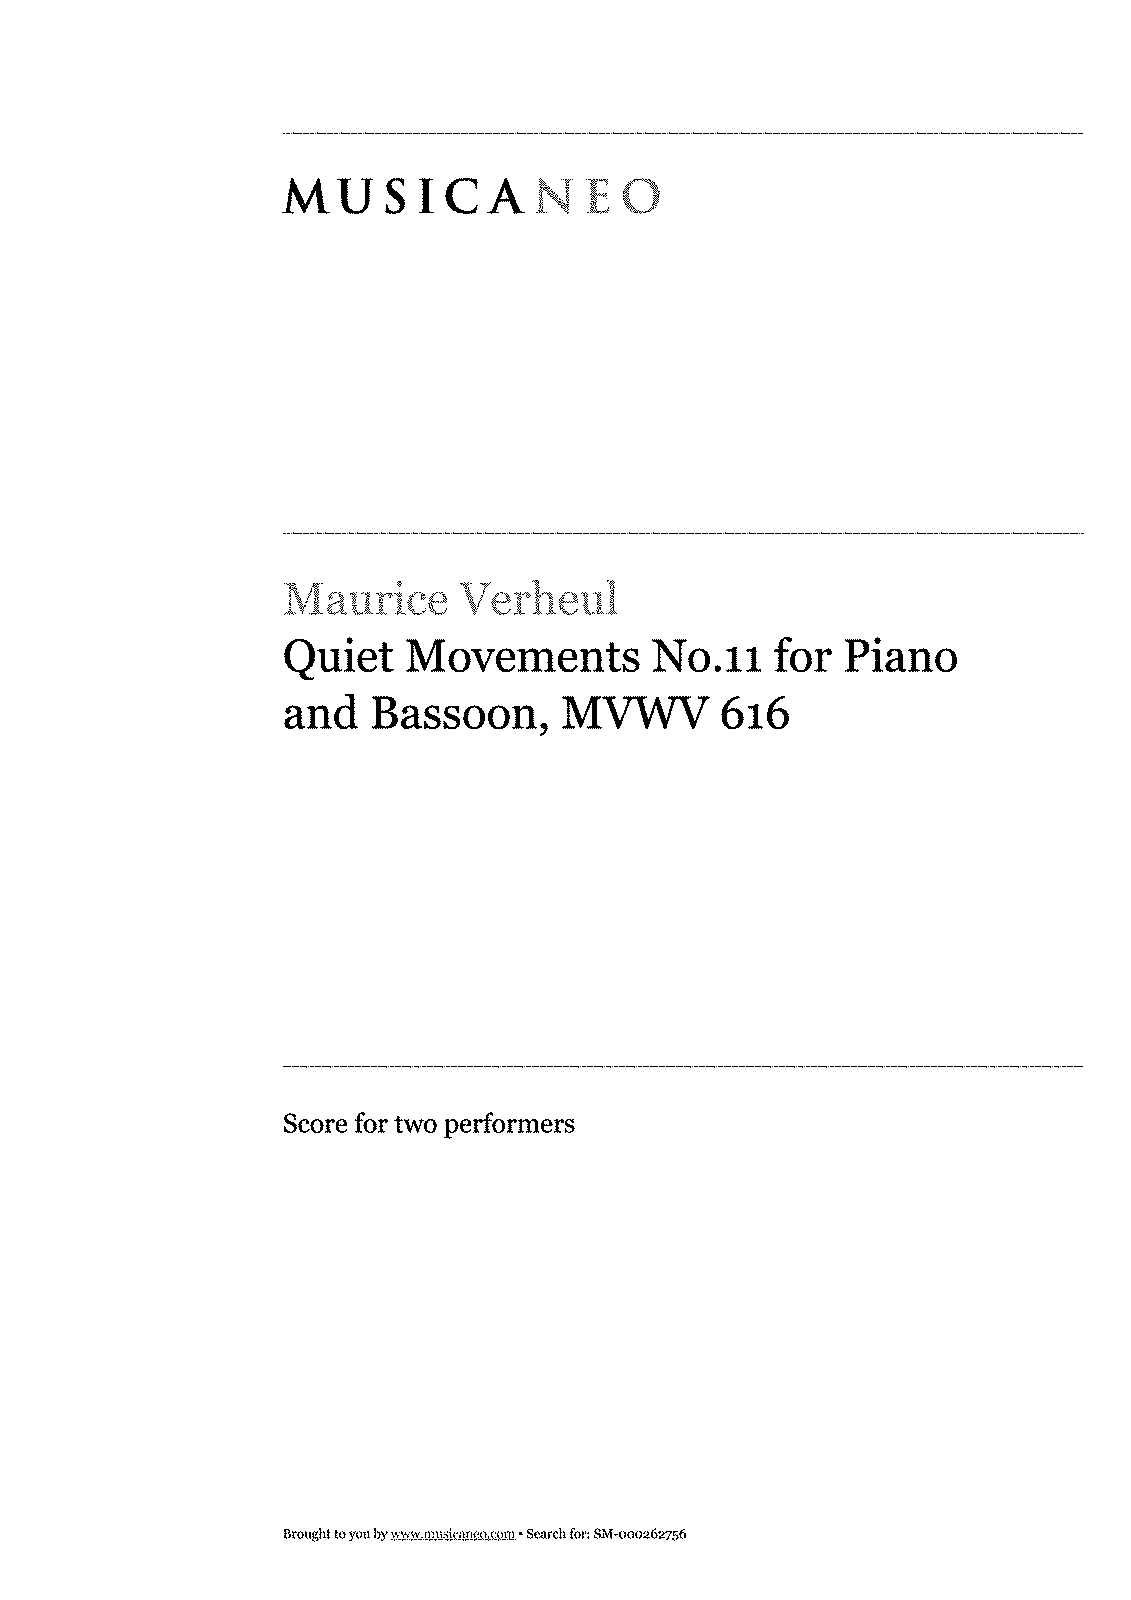 PMLP719074-quiet movements no 11 for piano and bassoon mvwv 616.pdf